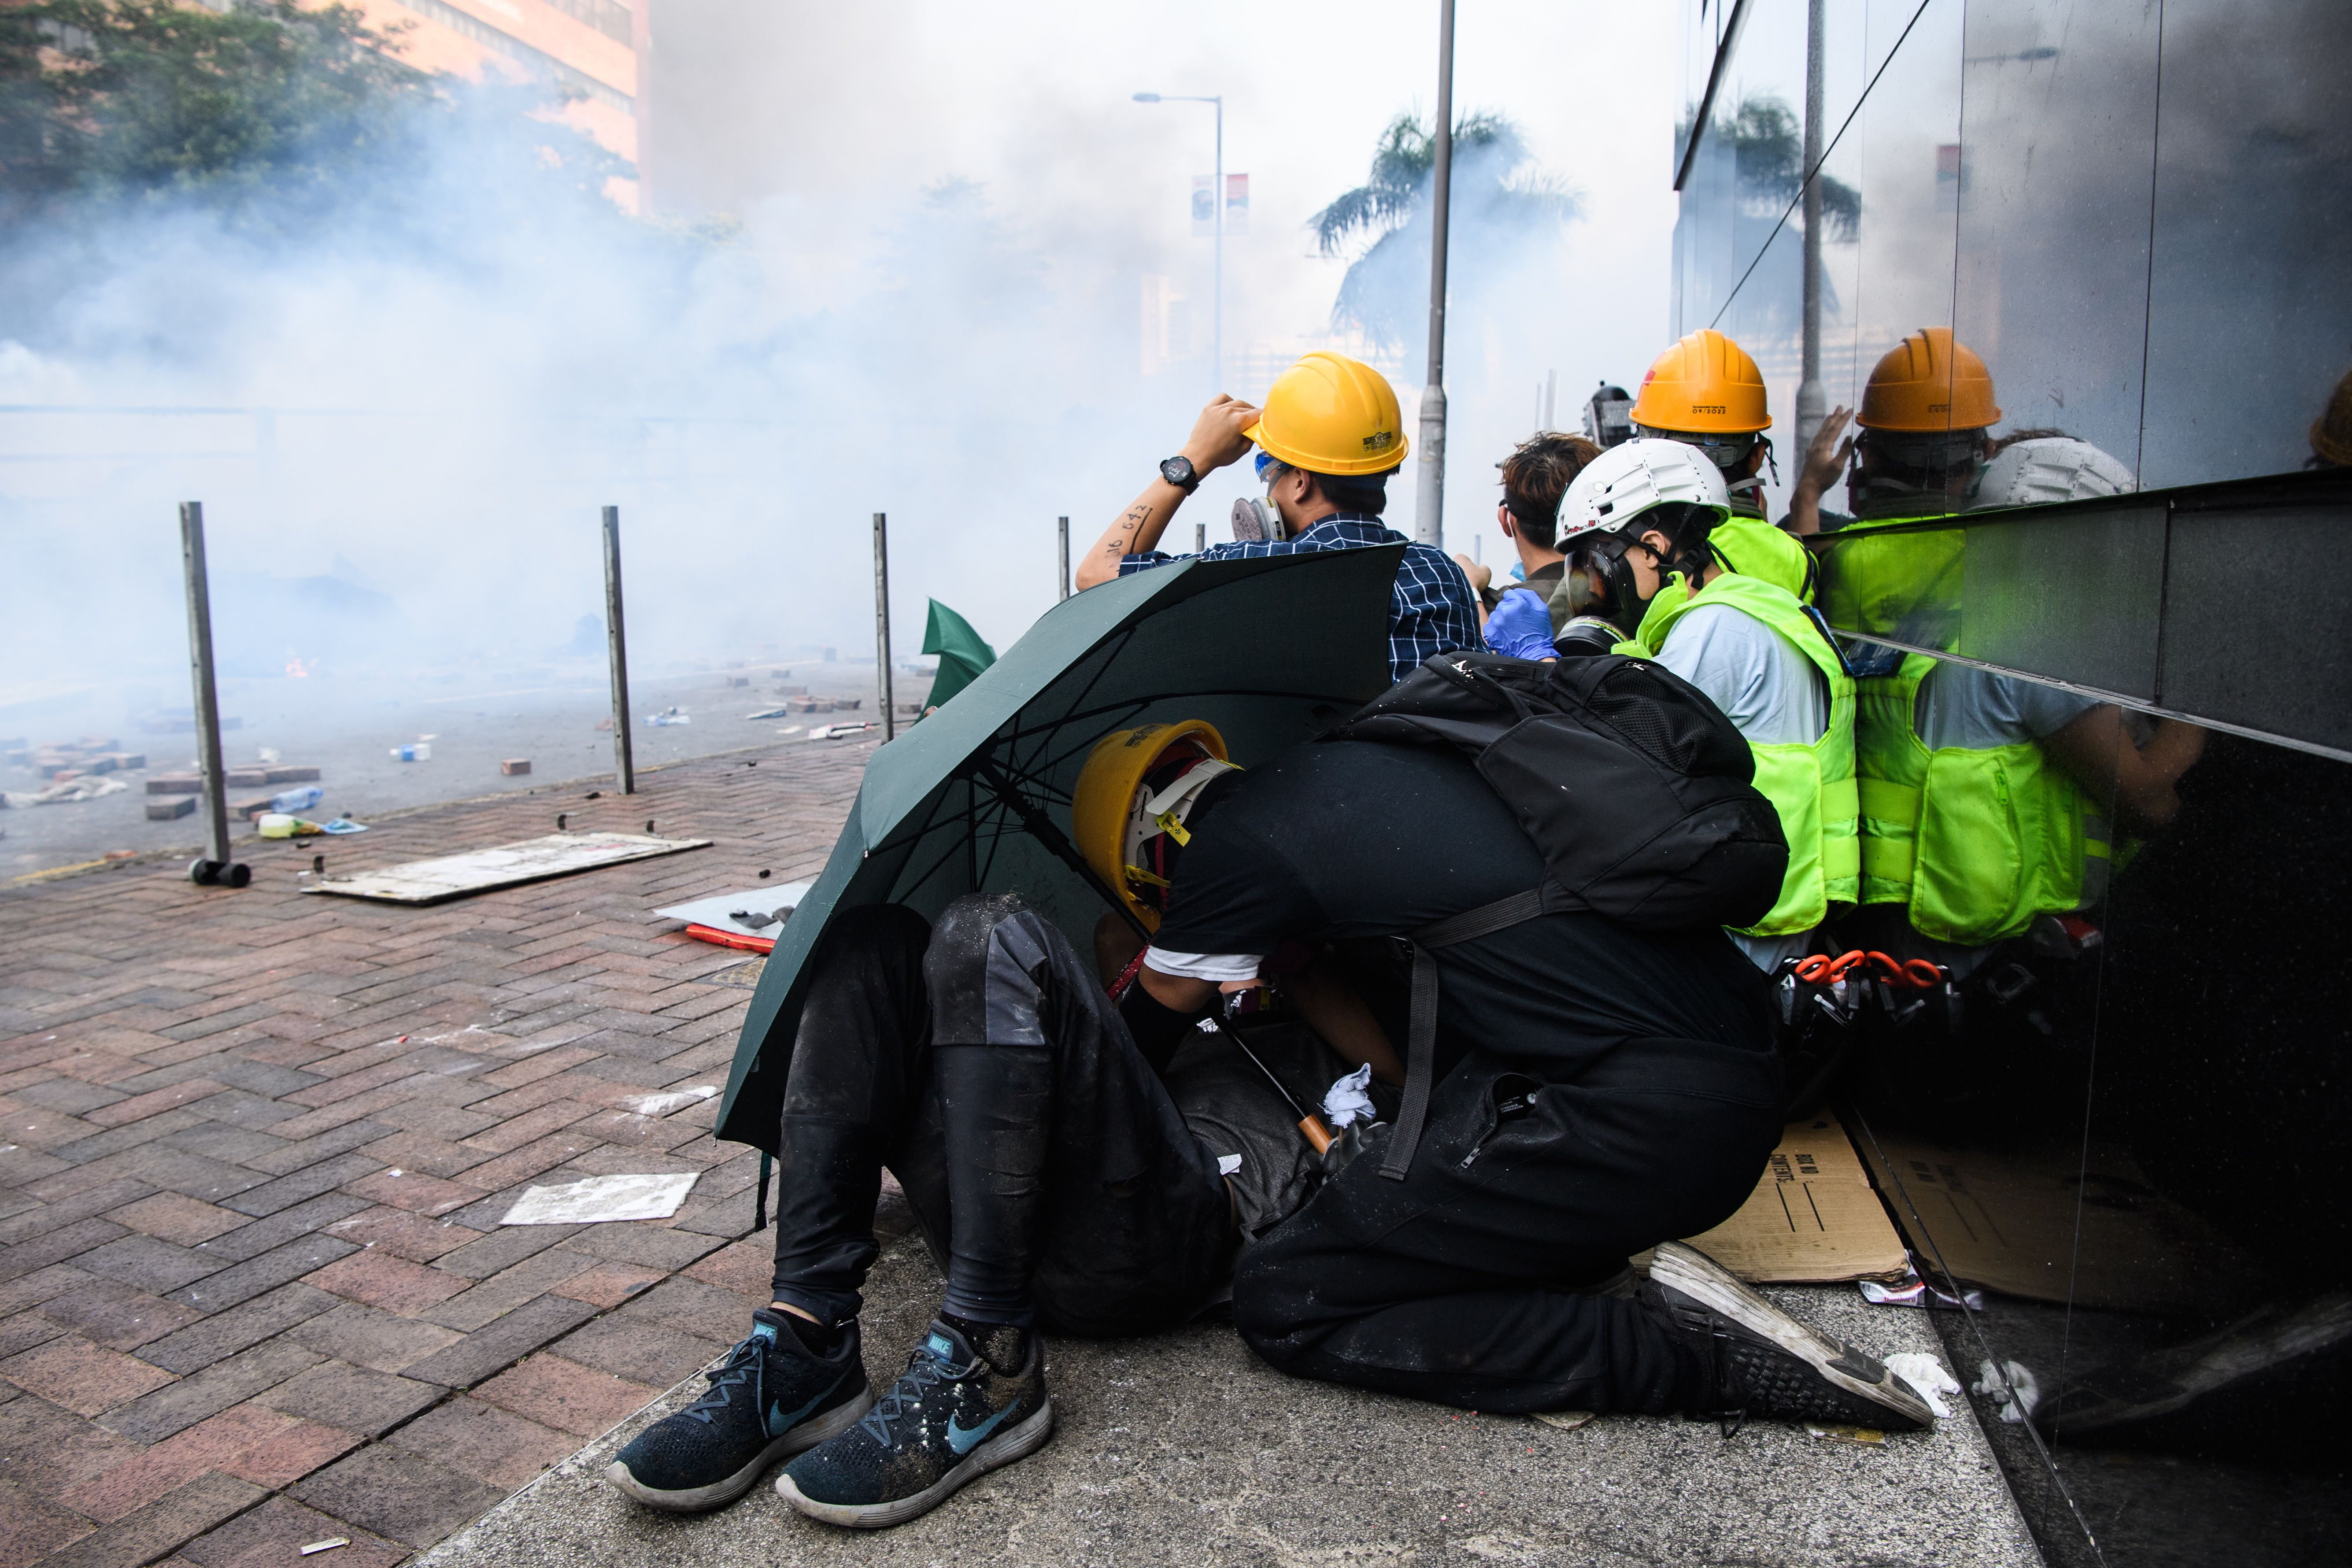 Protesters huddle as police fire tear gas in Hong Kong Polytechnic University on November 18, 2019.